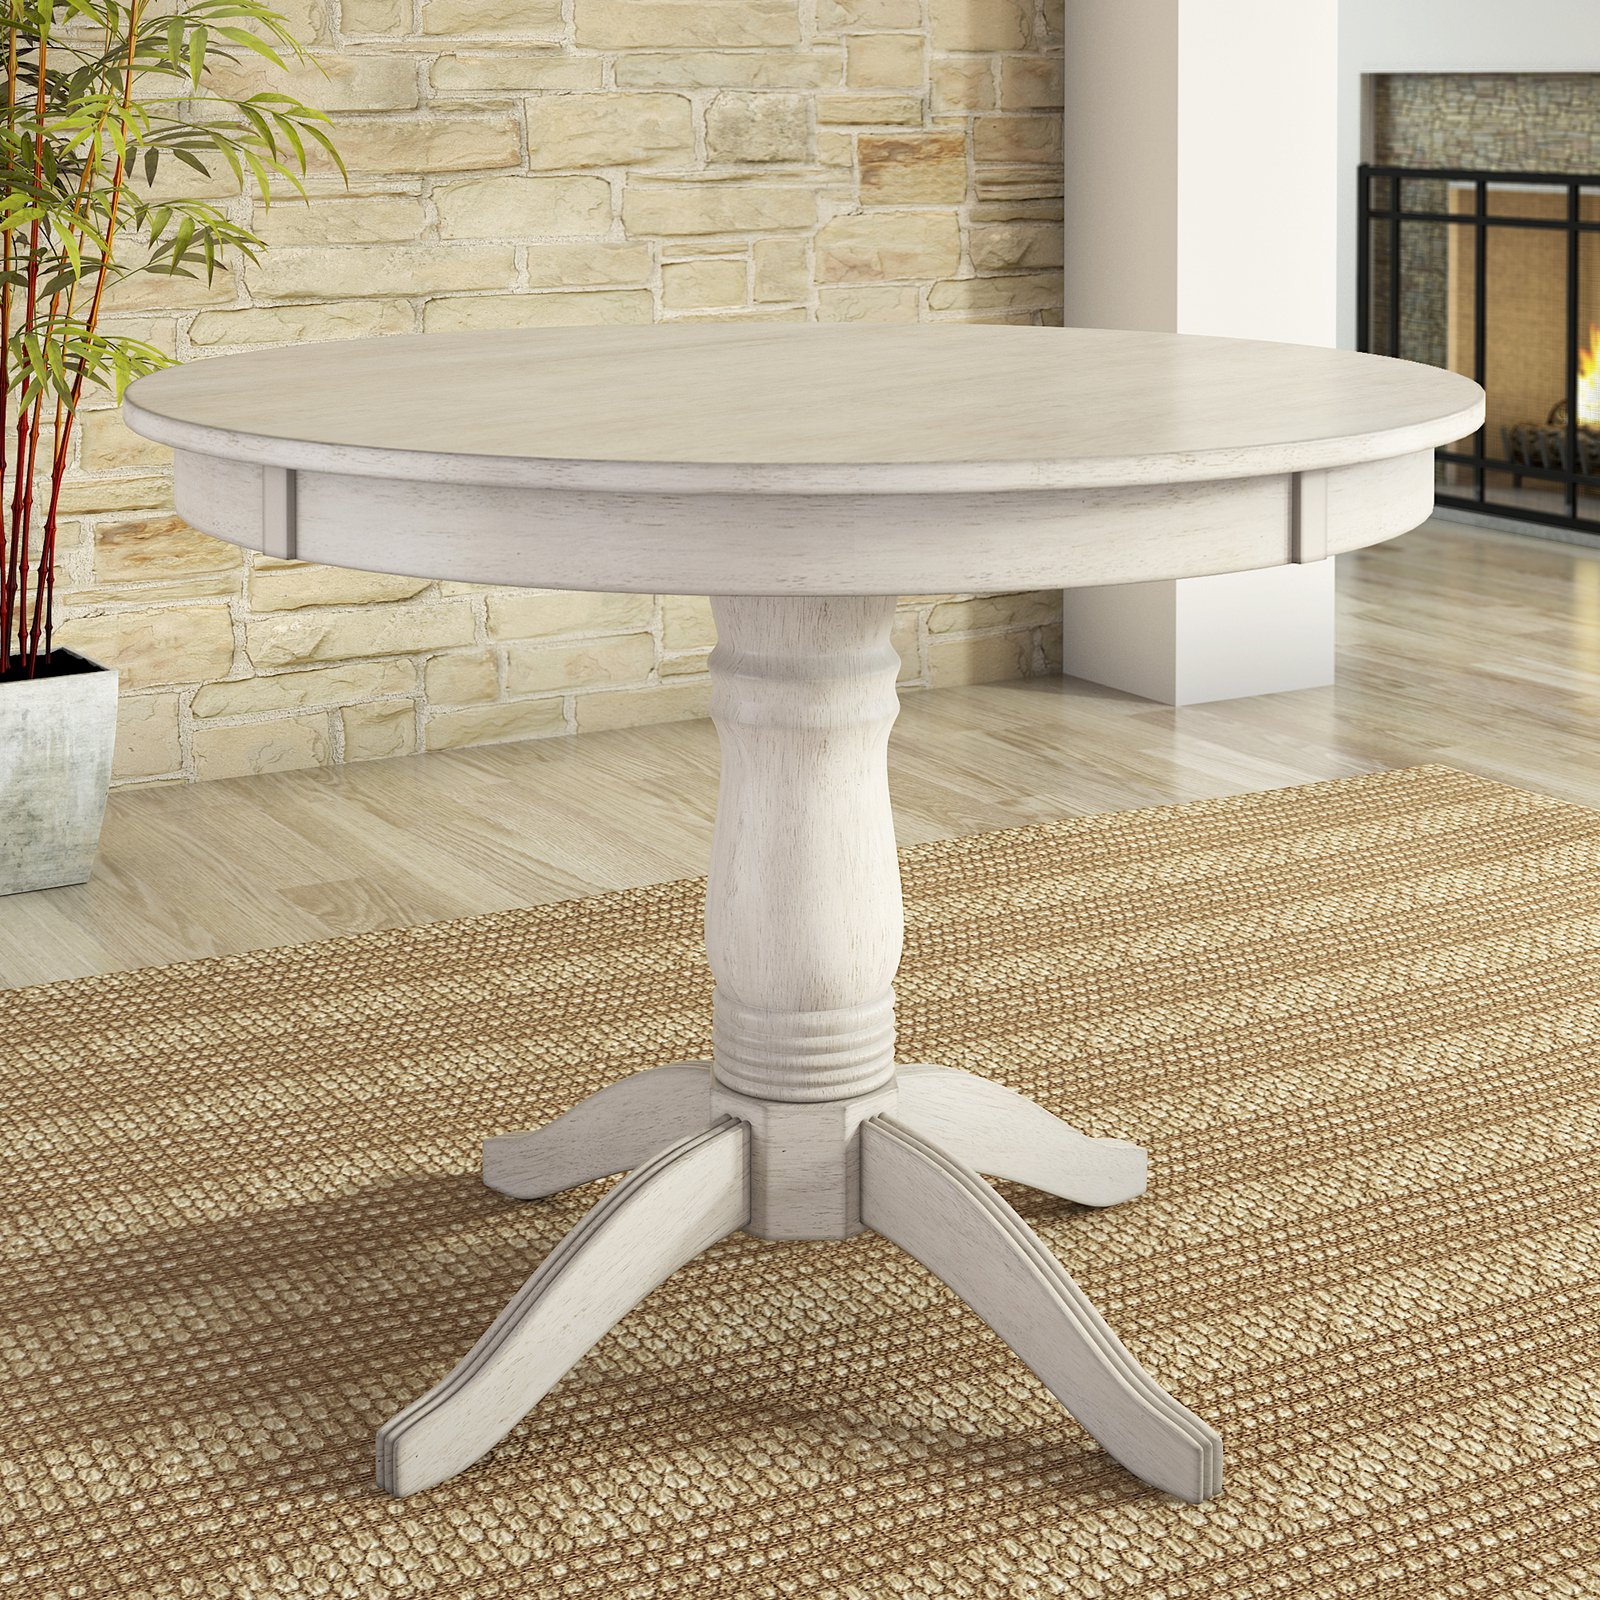 Lexington Round Dining Table, Multiple Colors